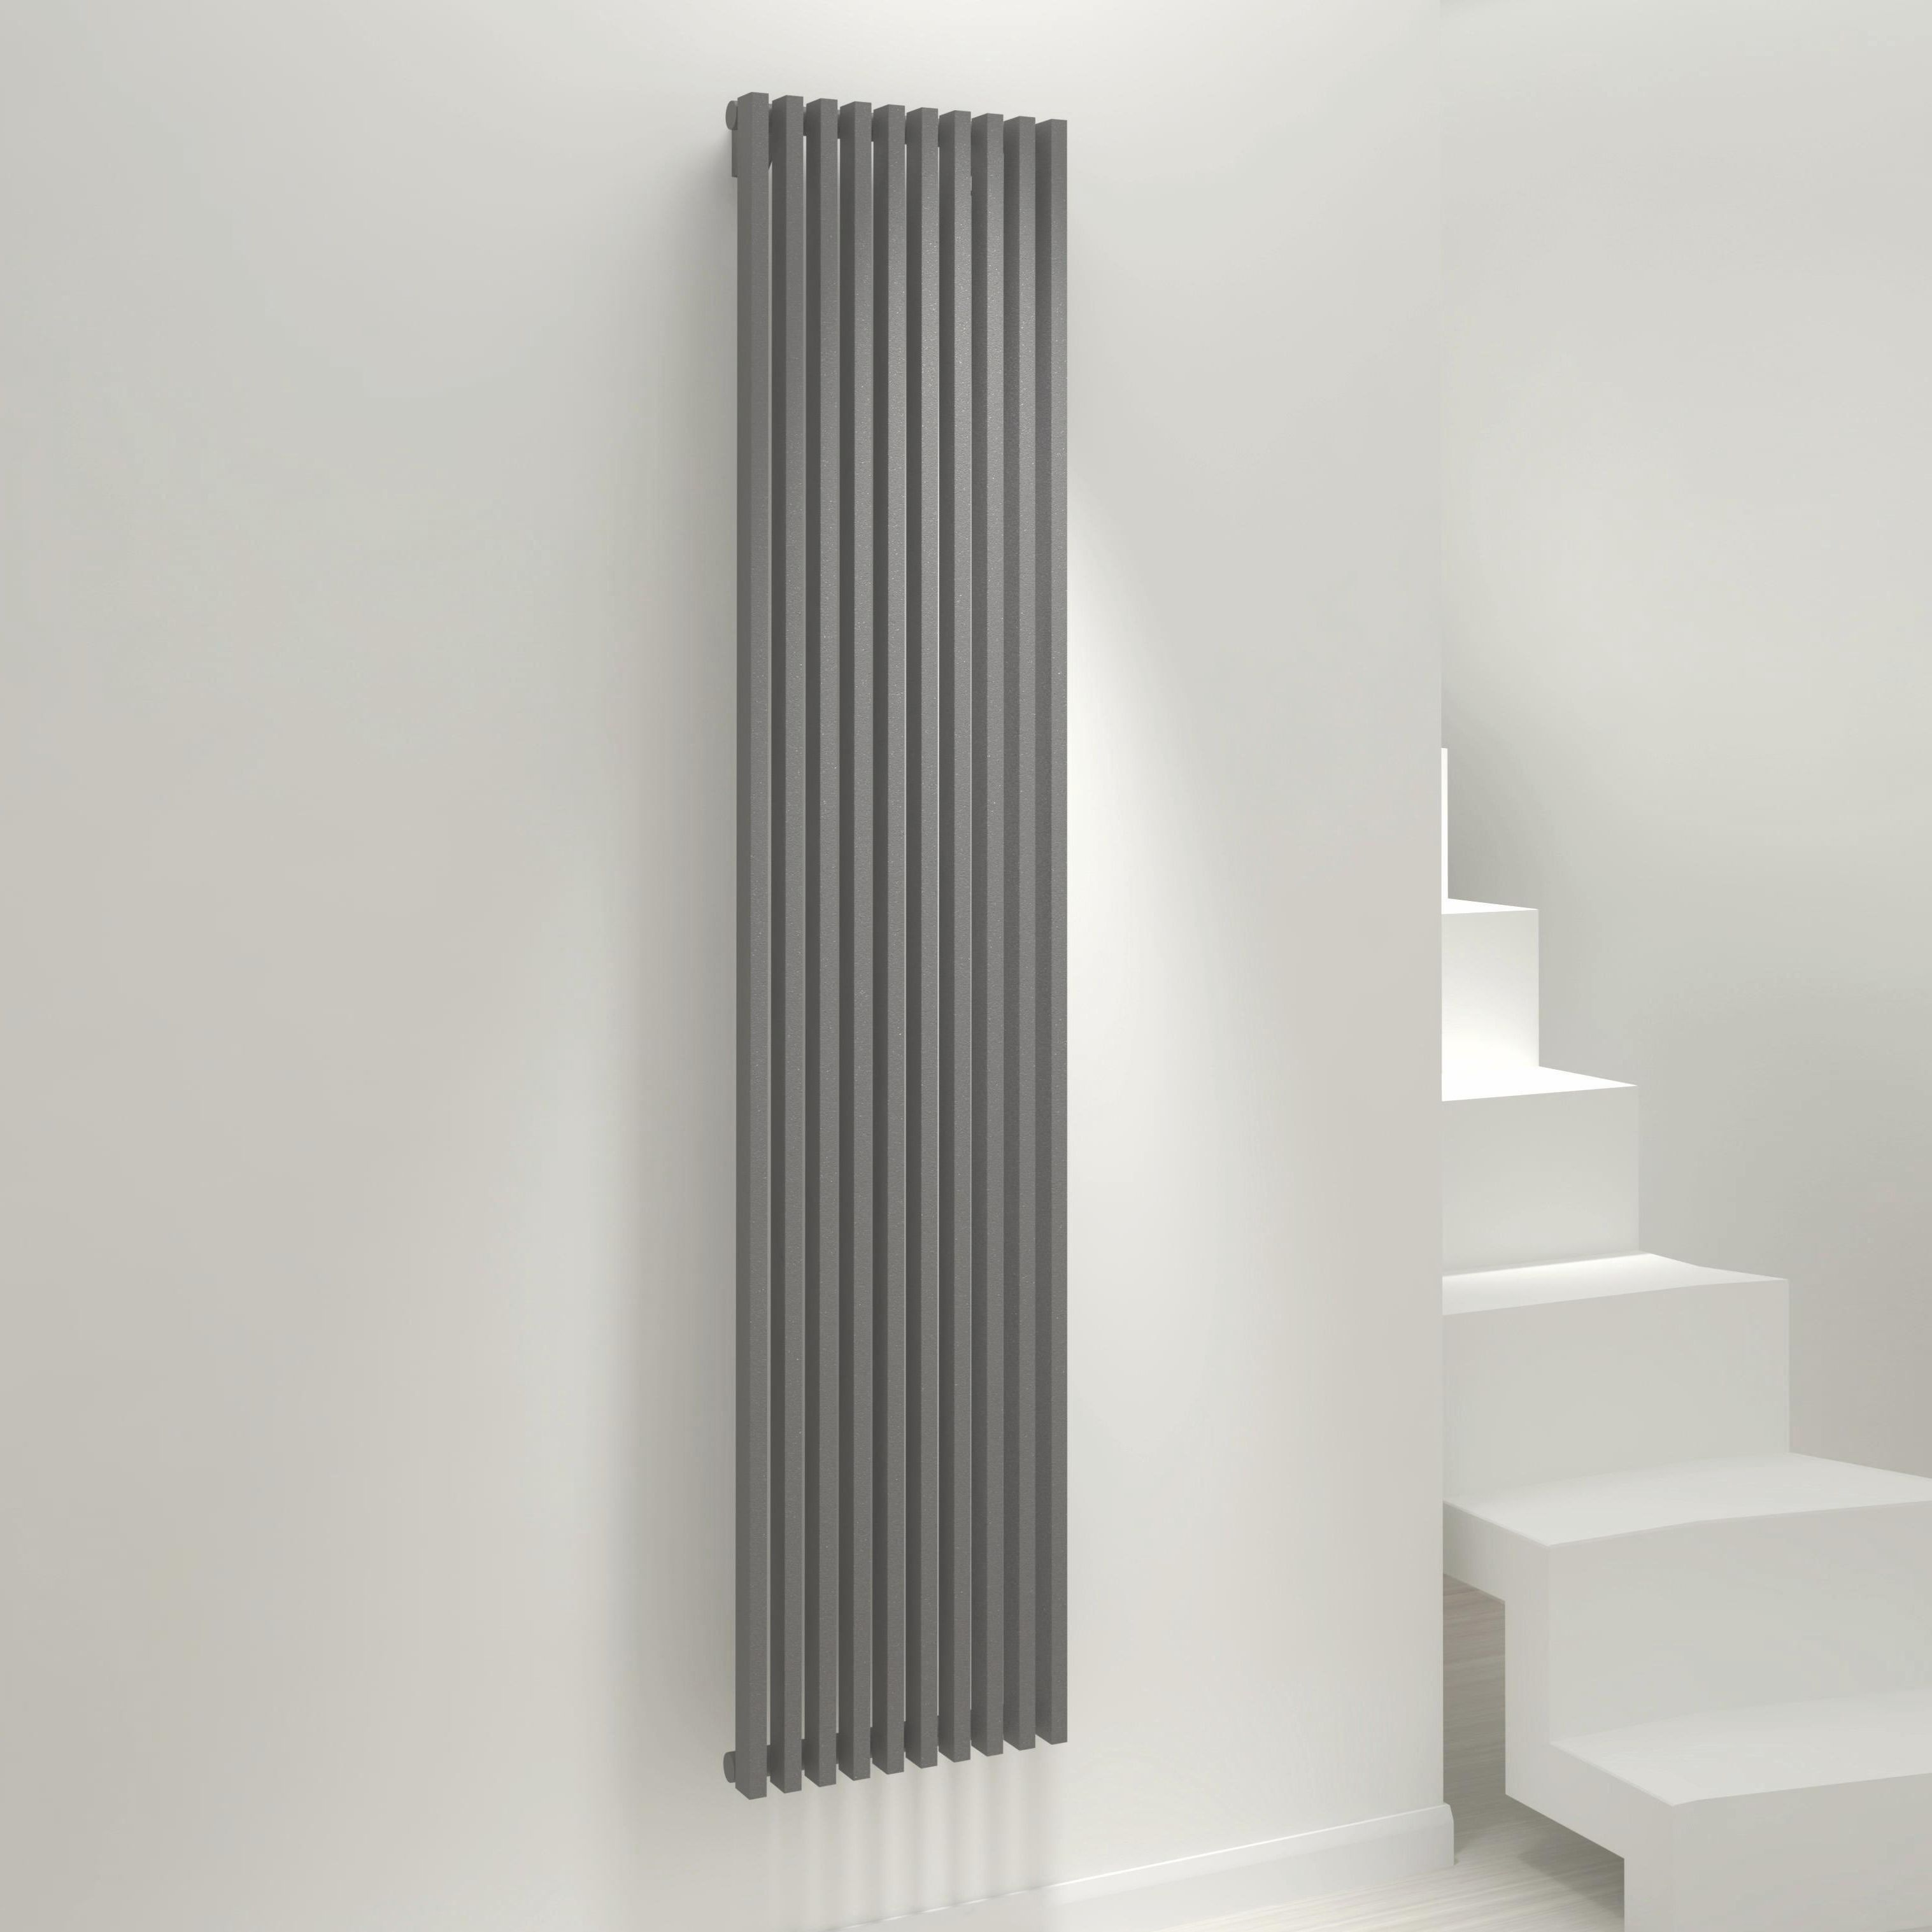 Kudox Xylo Vertical Radiator Anthracite (H)1800 mm (W)380